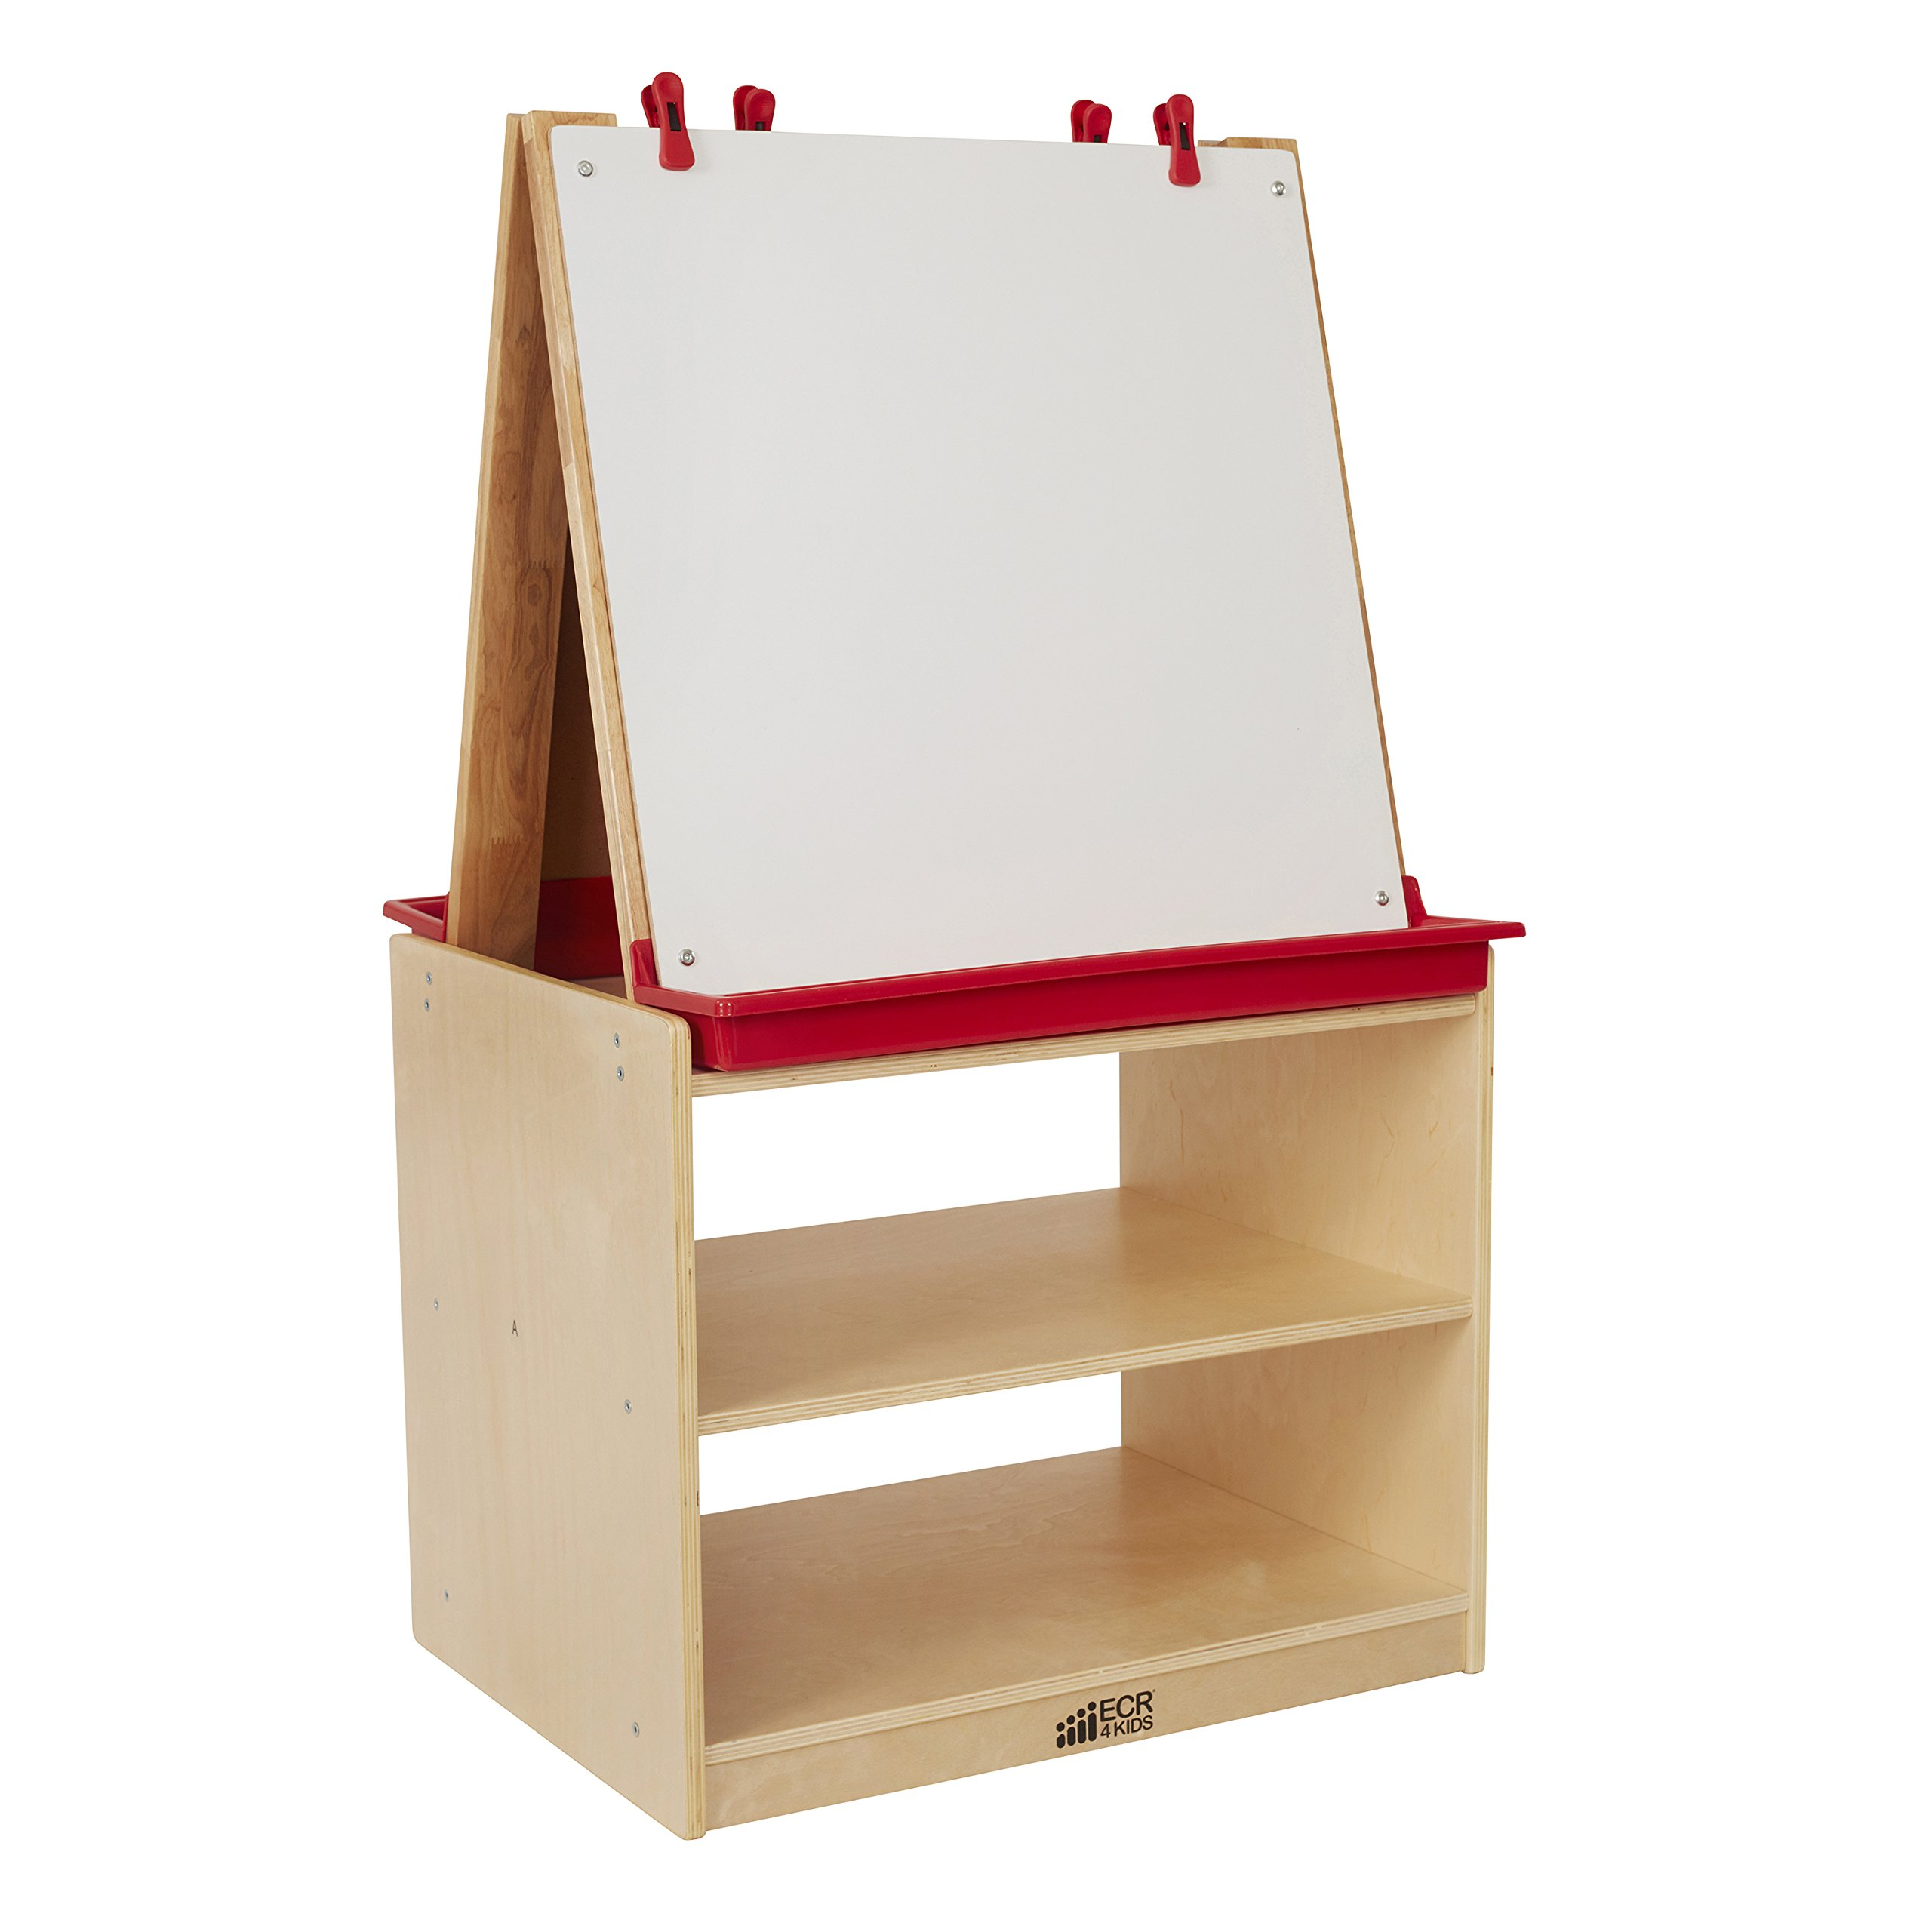 Cheap Kids Art Table With Storage find Kids Art Table With Storage